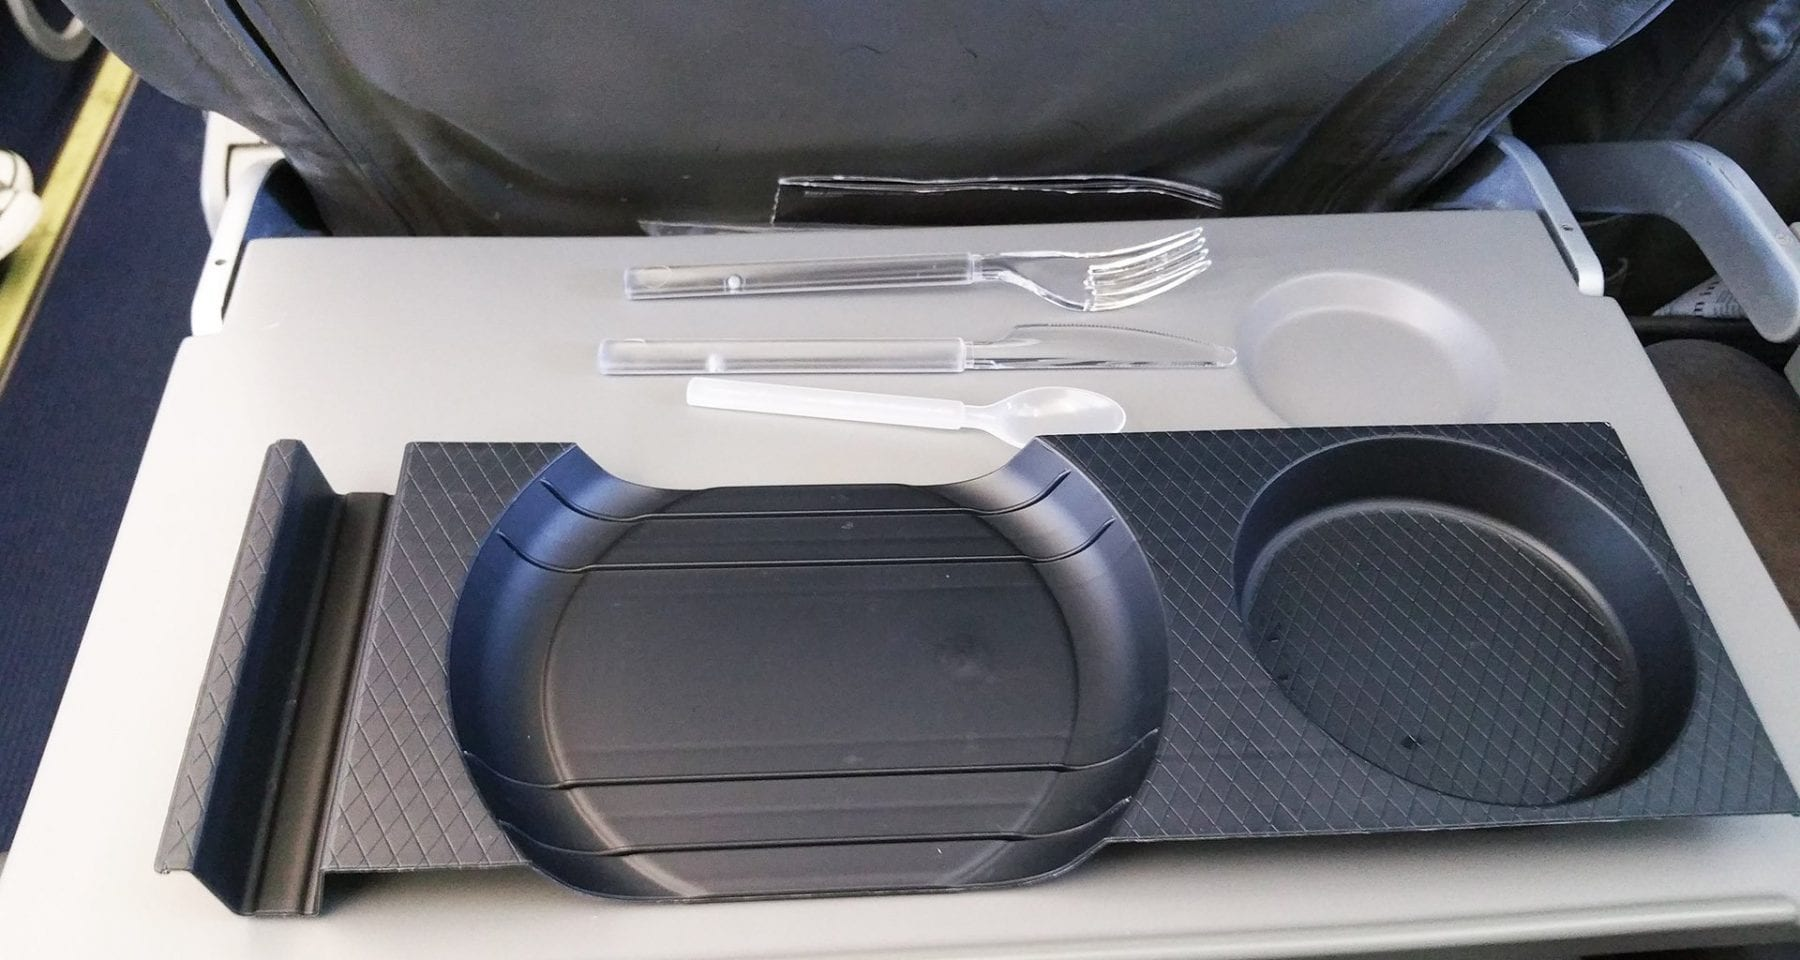 Condor absolute one inflight tray for economy class